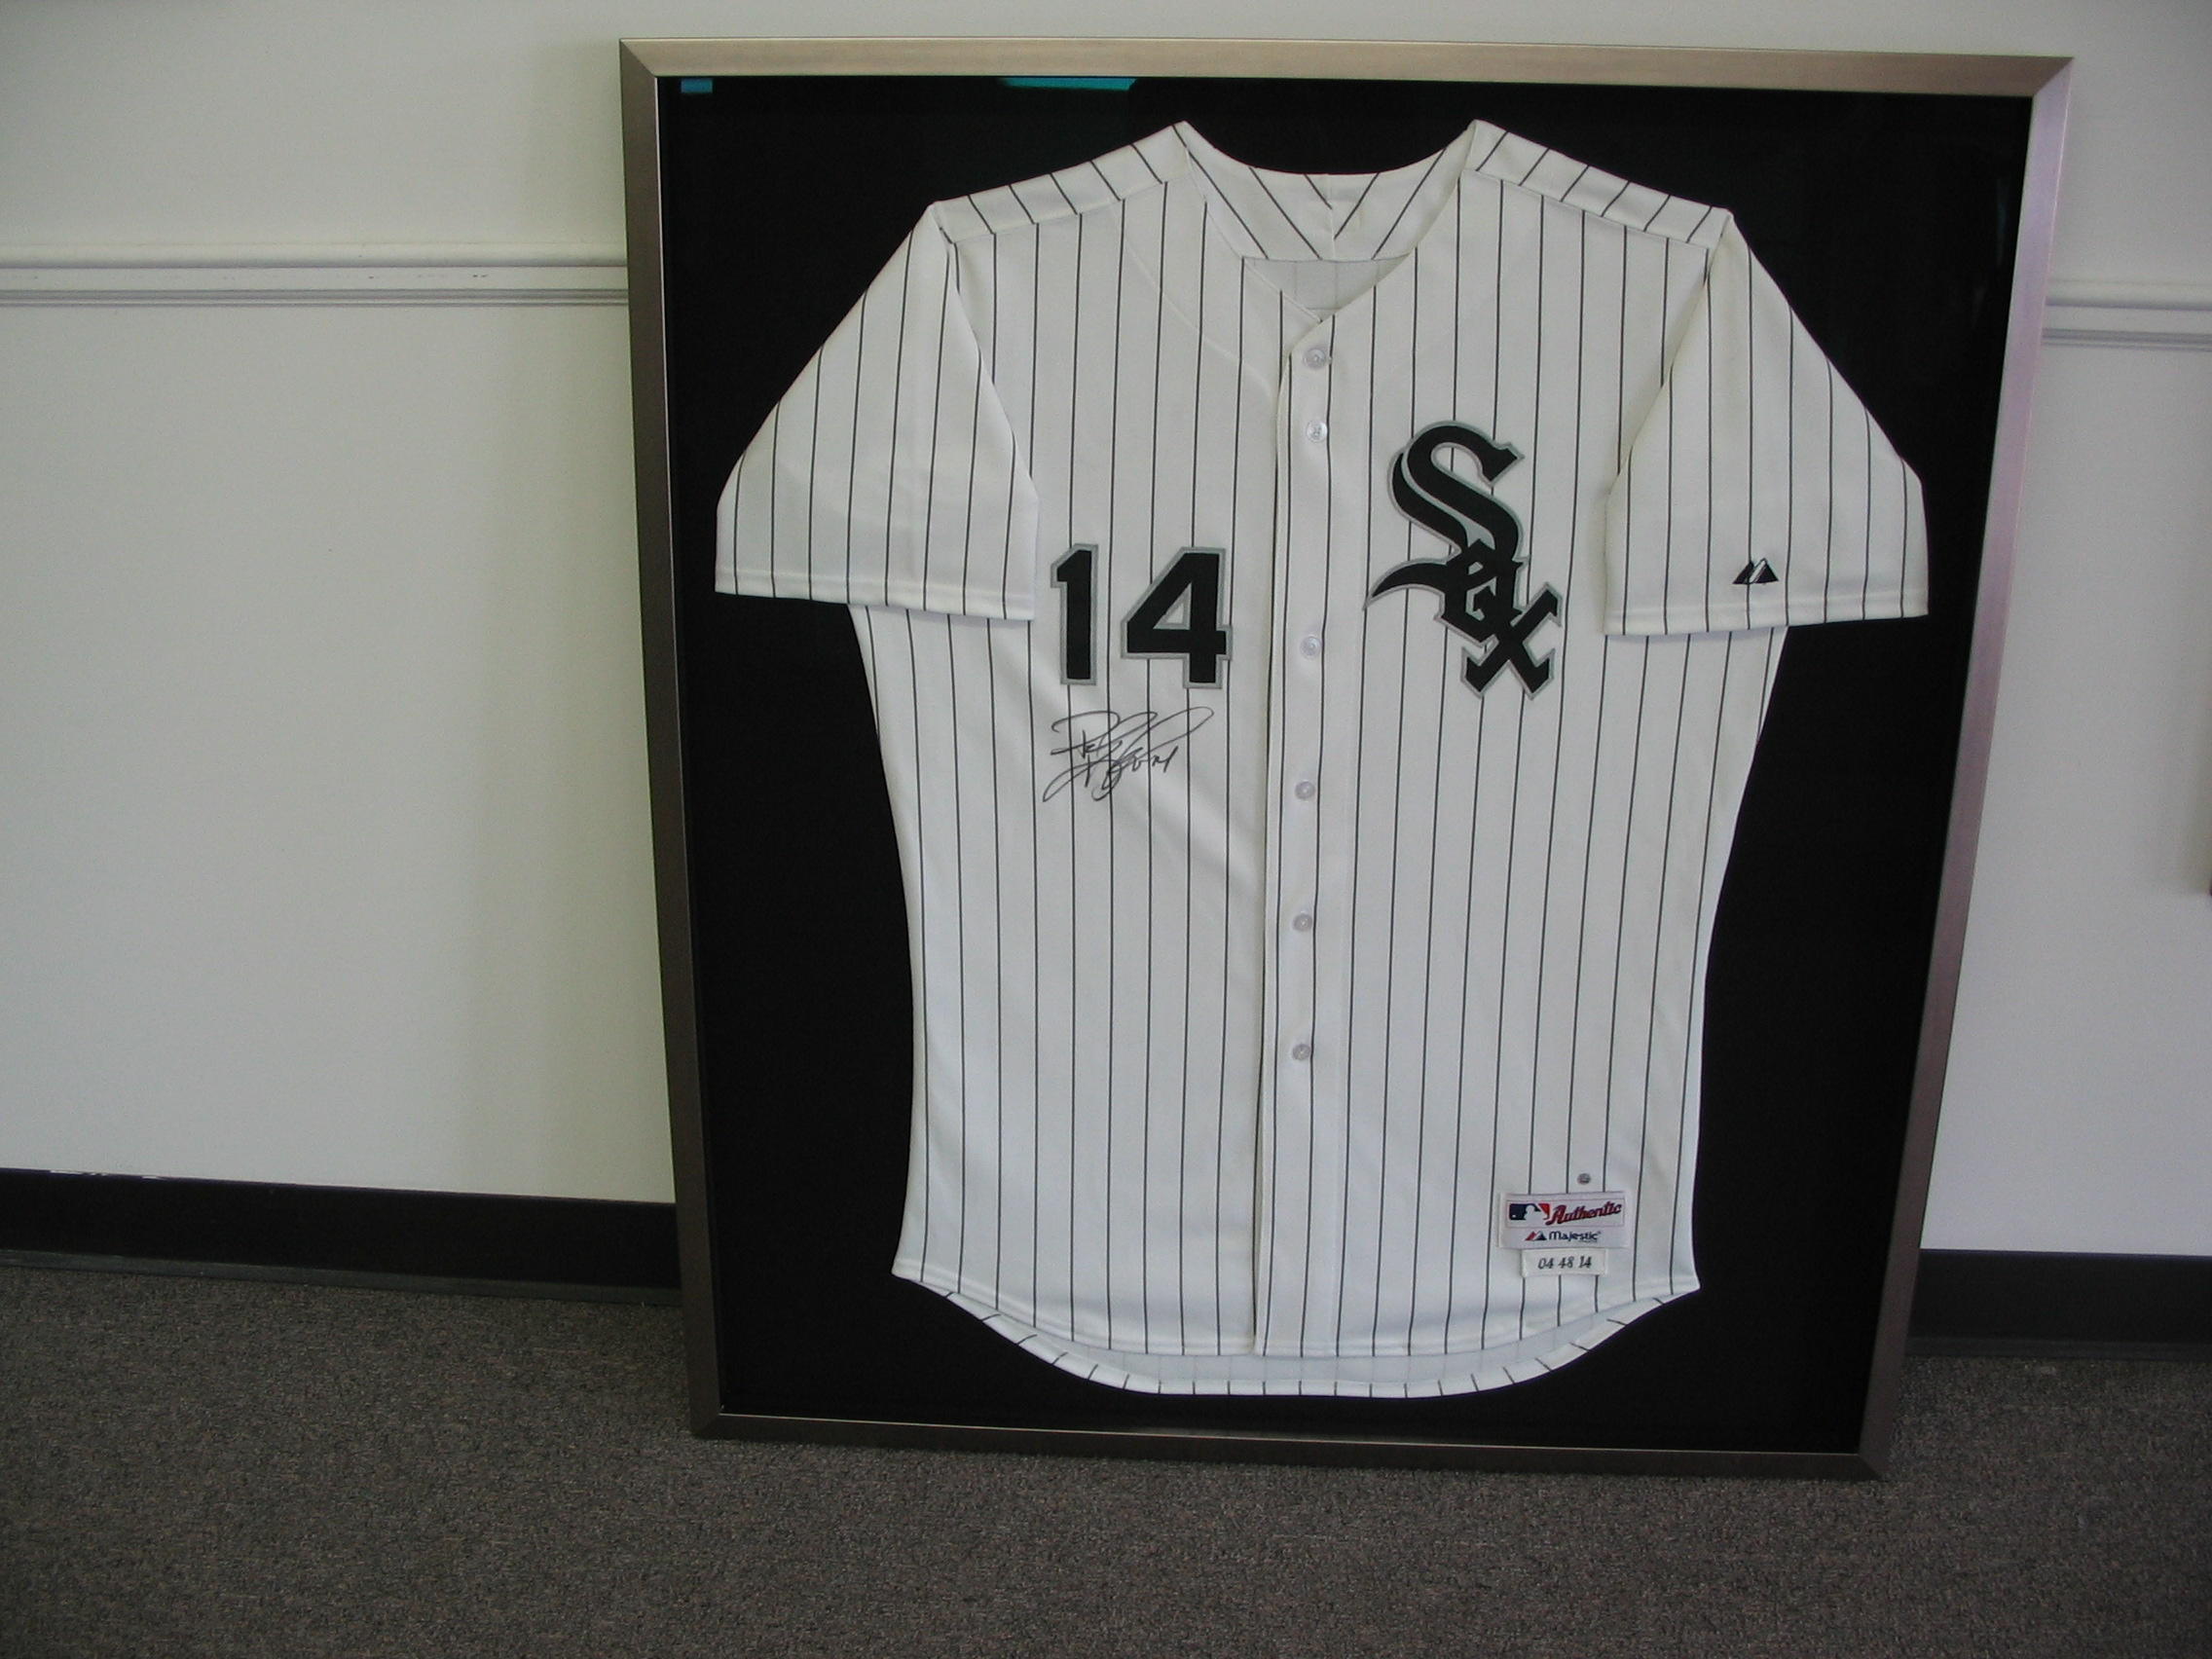 White Sox jersey framed by The Framemakers